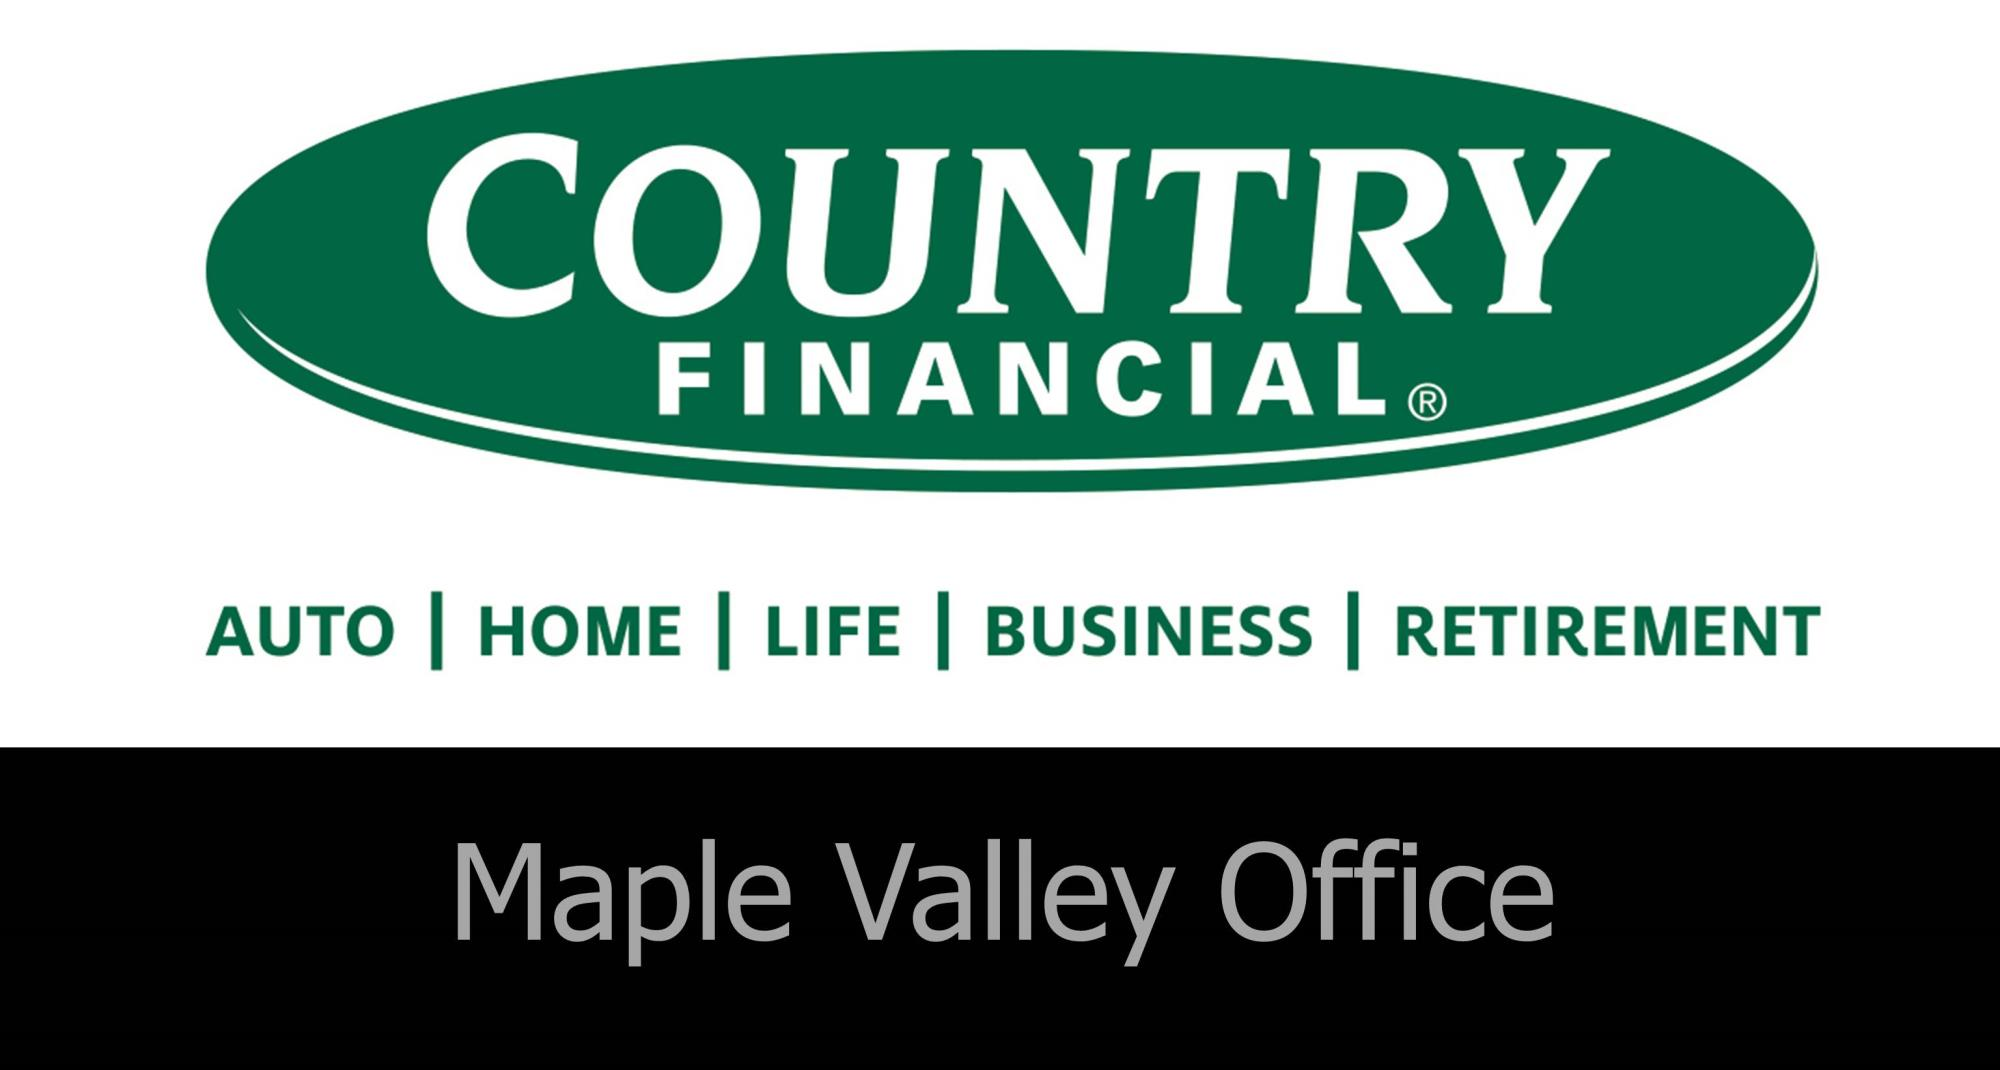 Country financial MV Office - LOGO